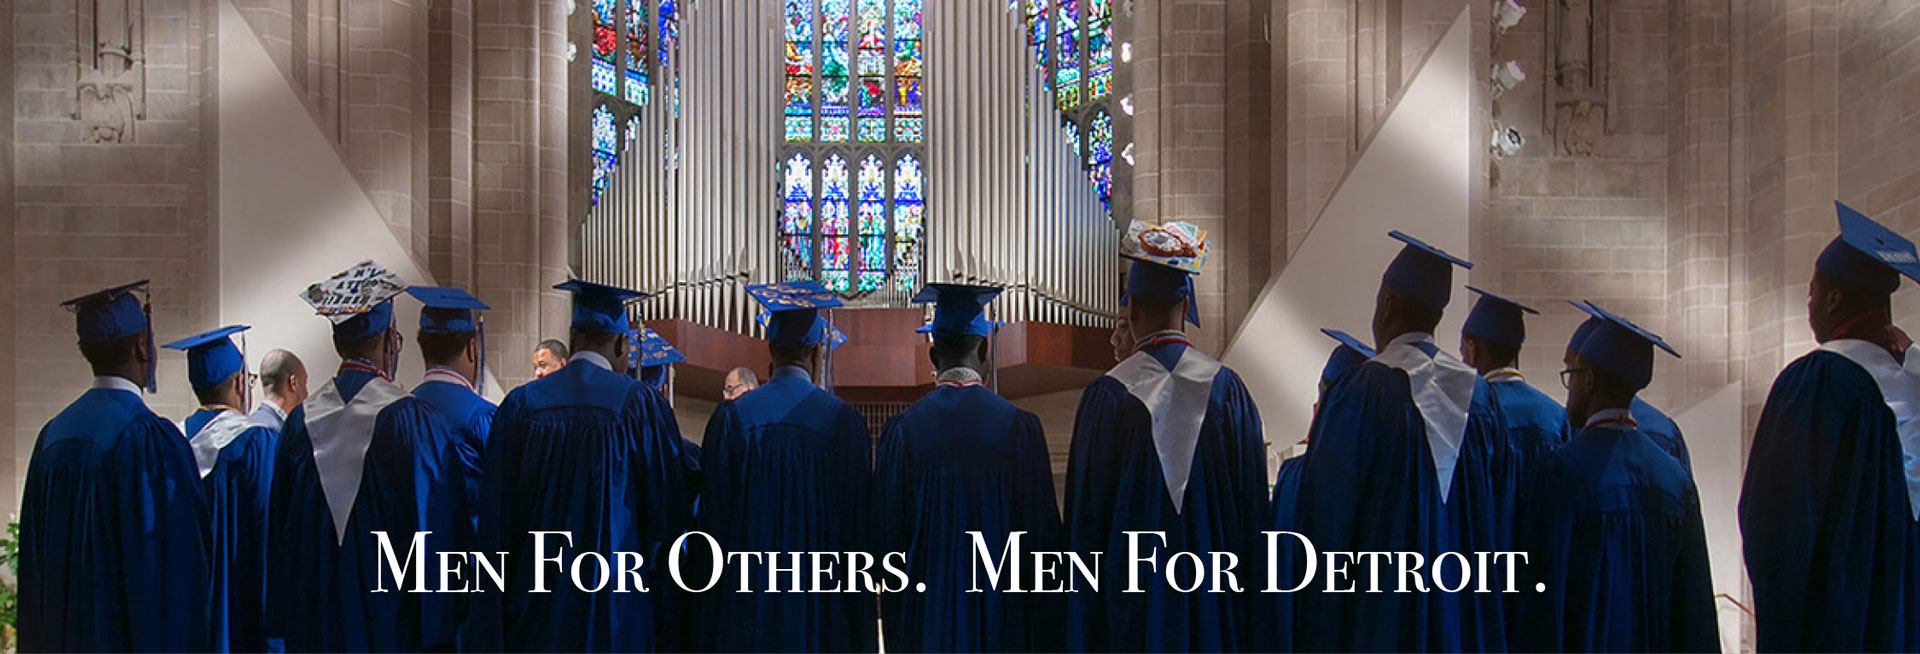 Men for Others